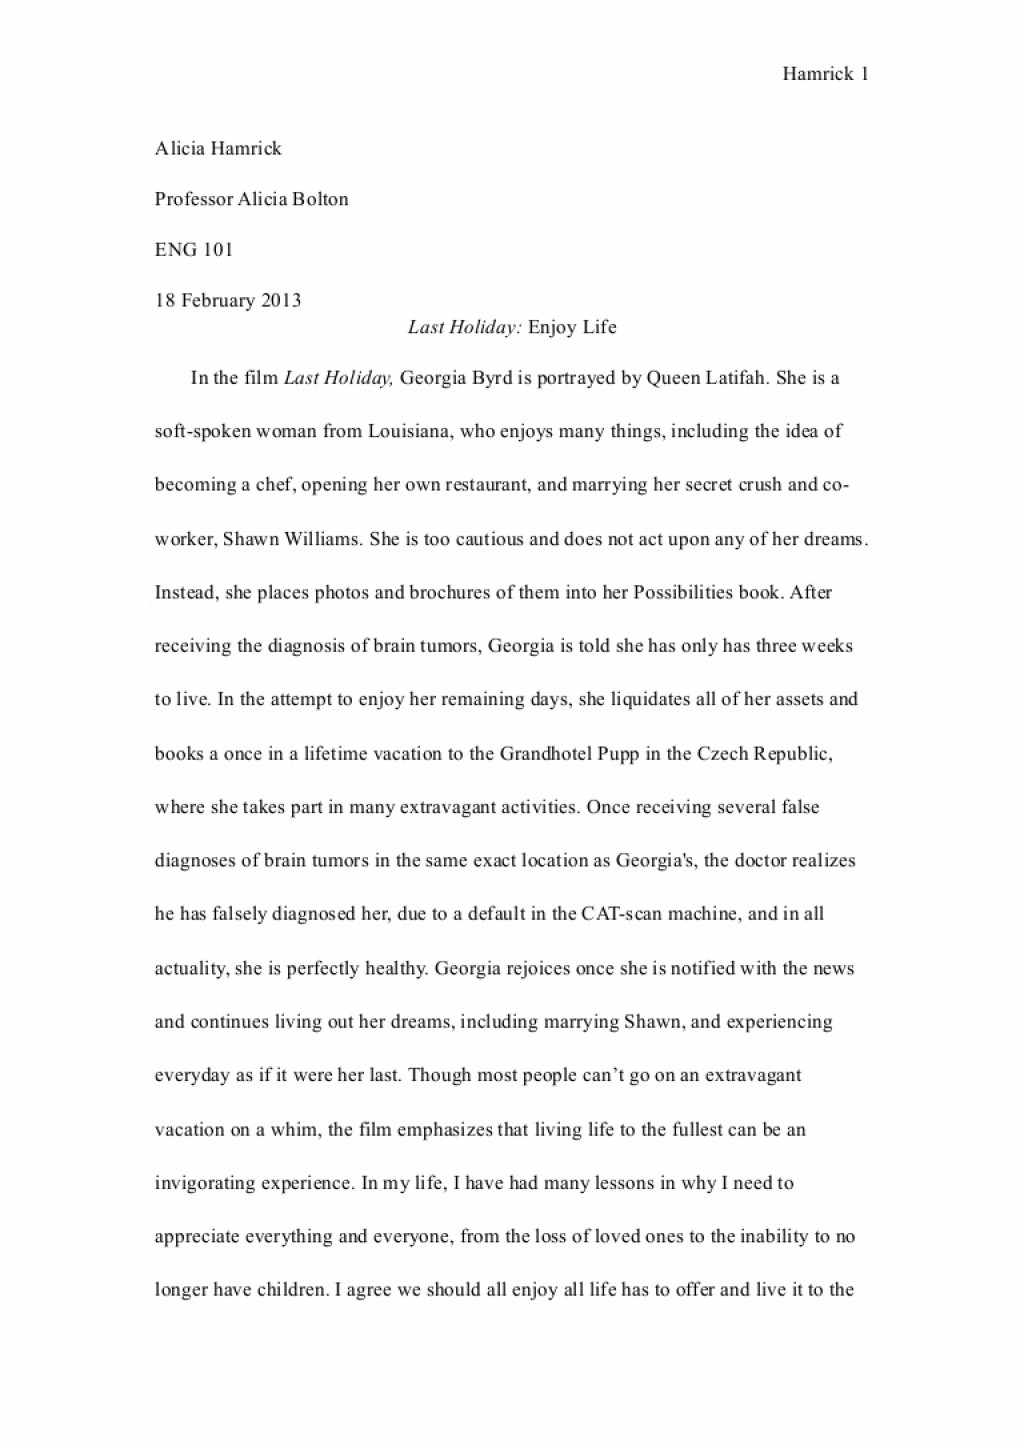 007 Essay Example On Achieving Goal Eng101essay1revisied Phpapp02 Thumbnail Stunning A Narrative Large